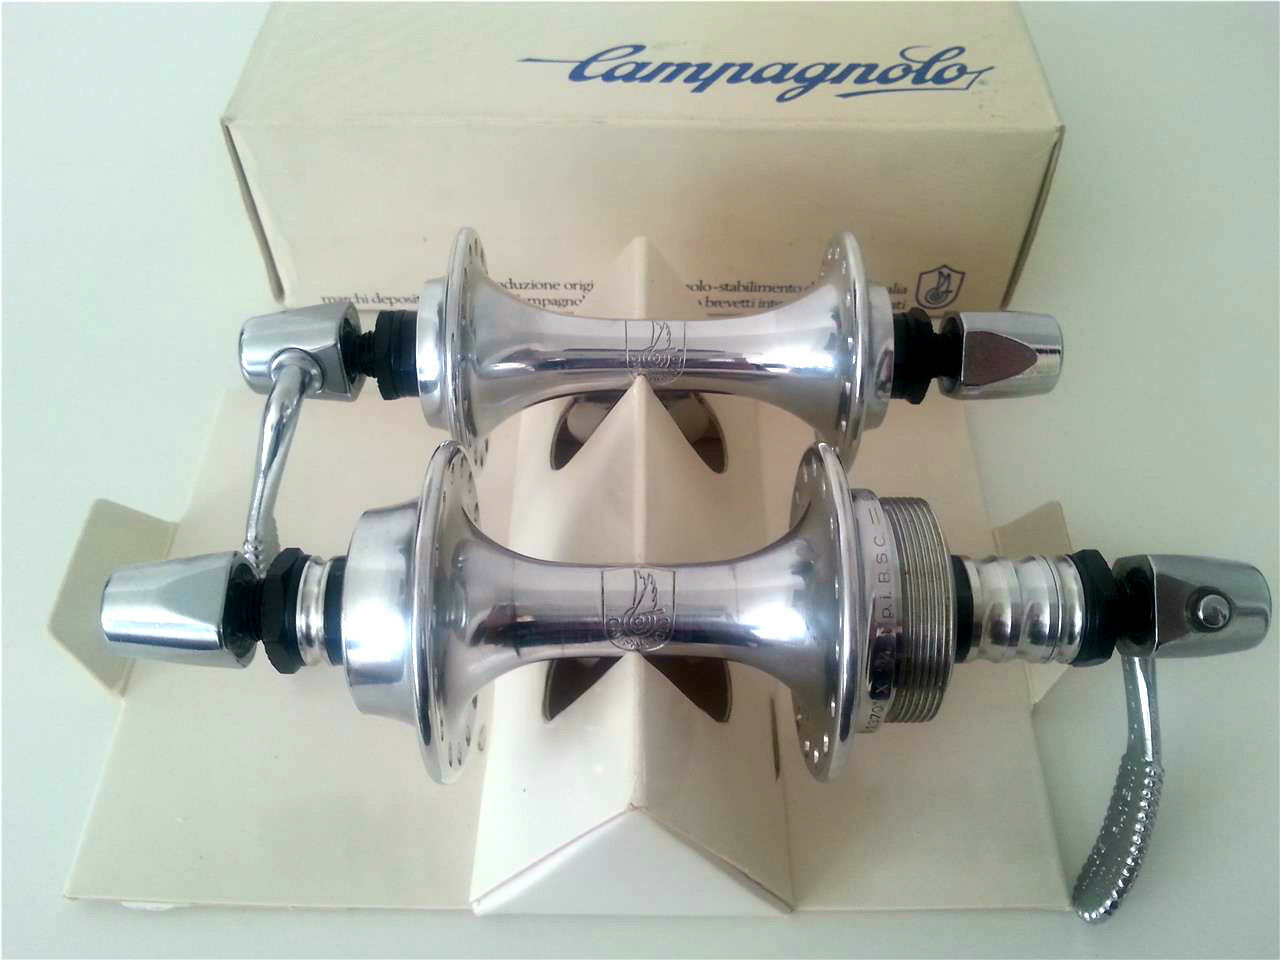 NOS 1983 CAMPAGNOLO TRIOMPHE SERIES 32H HUB SET FOR ROAD BIKE VINTAGE HUBS RARE